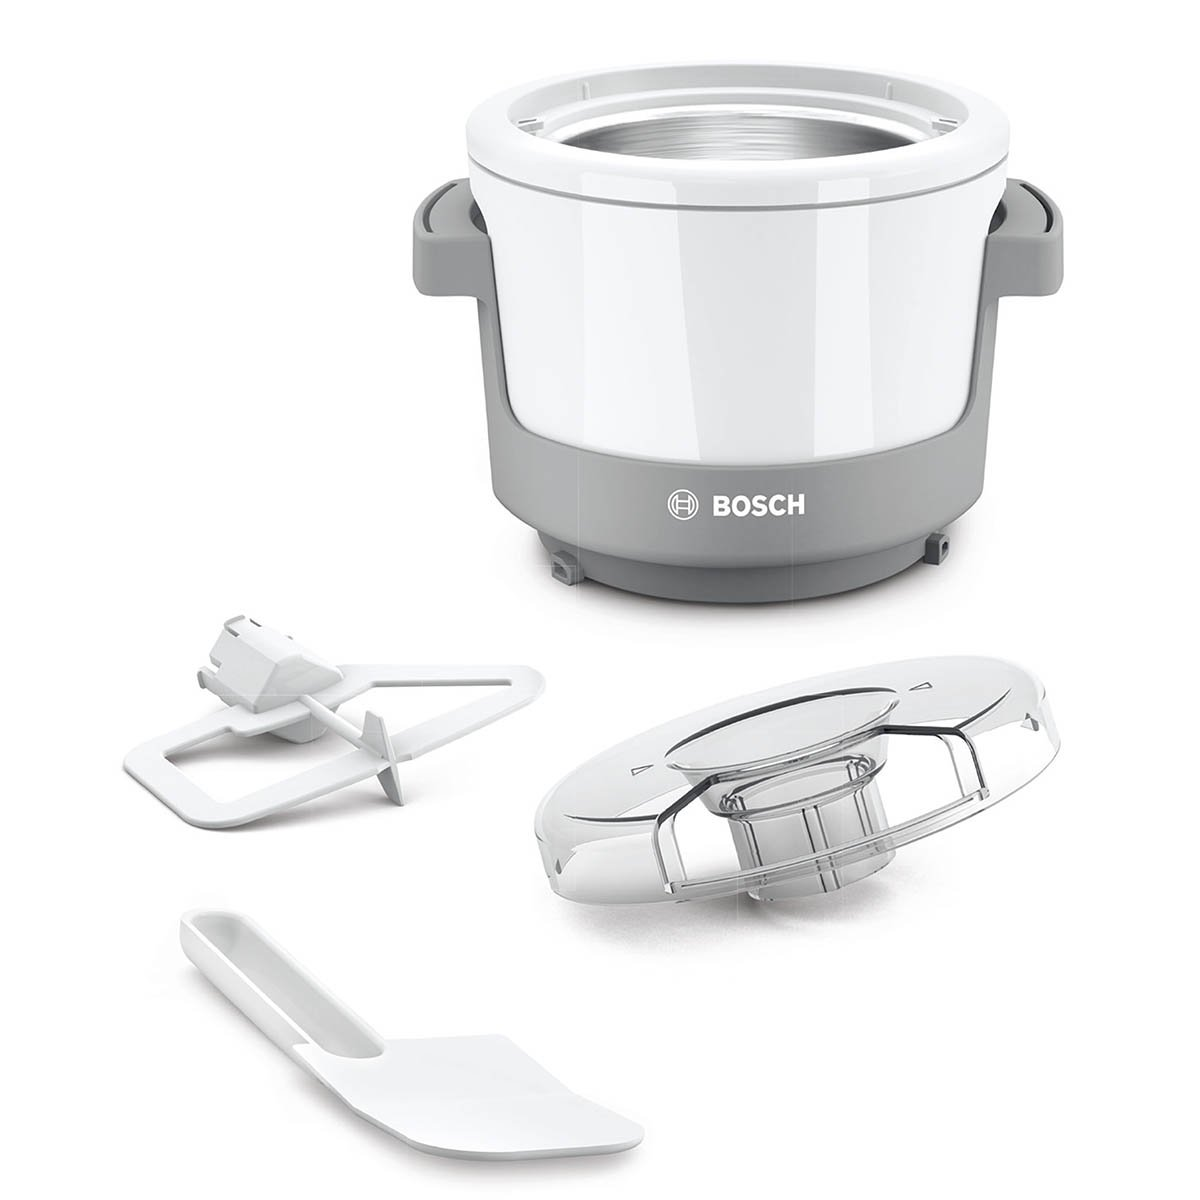 Bosch MUZXEB1 Lifestyle Set Froze Ndreams with Ice Maker and Splash Guard Lid Opening White